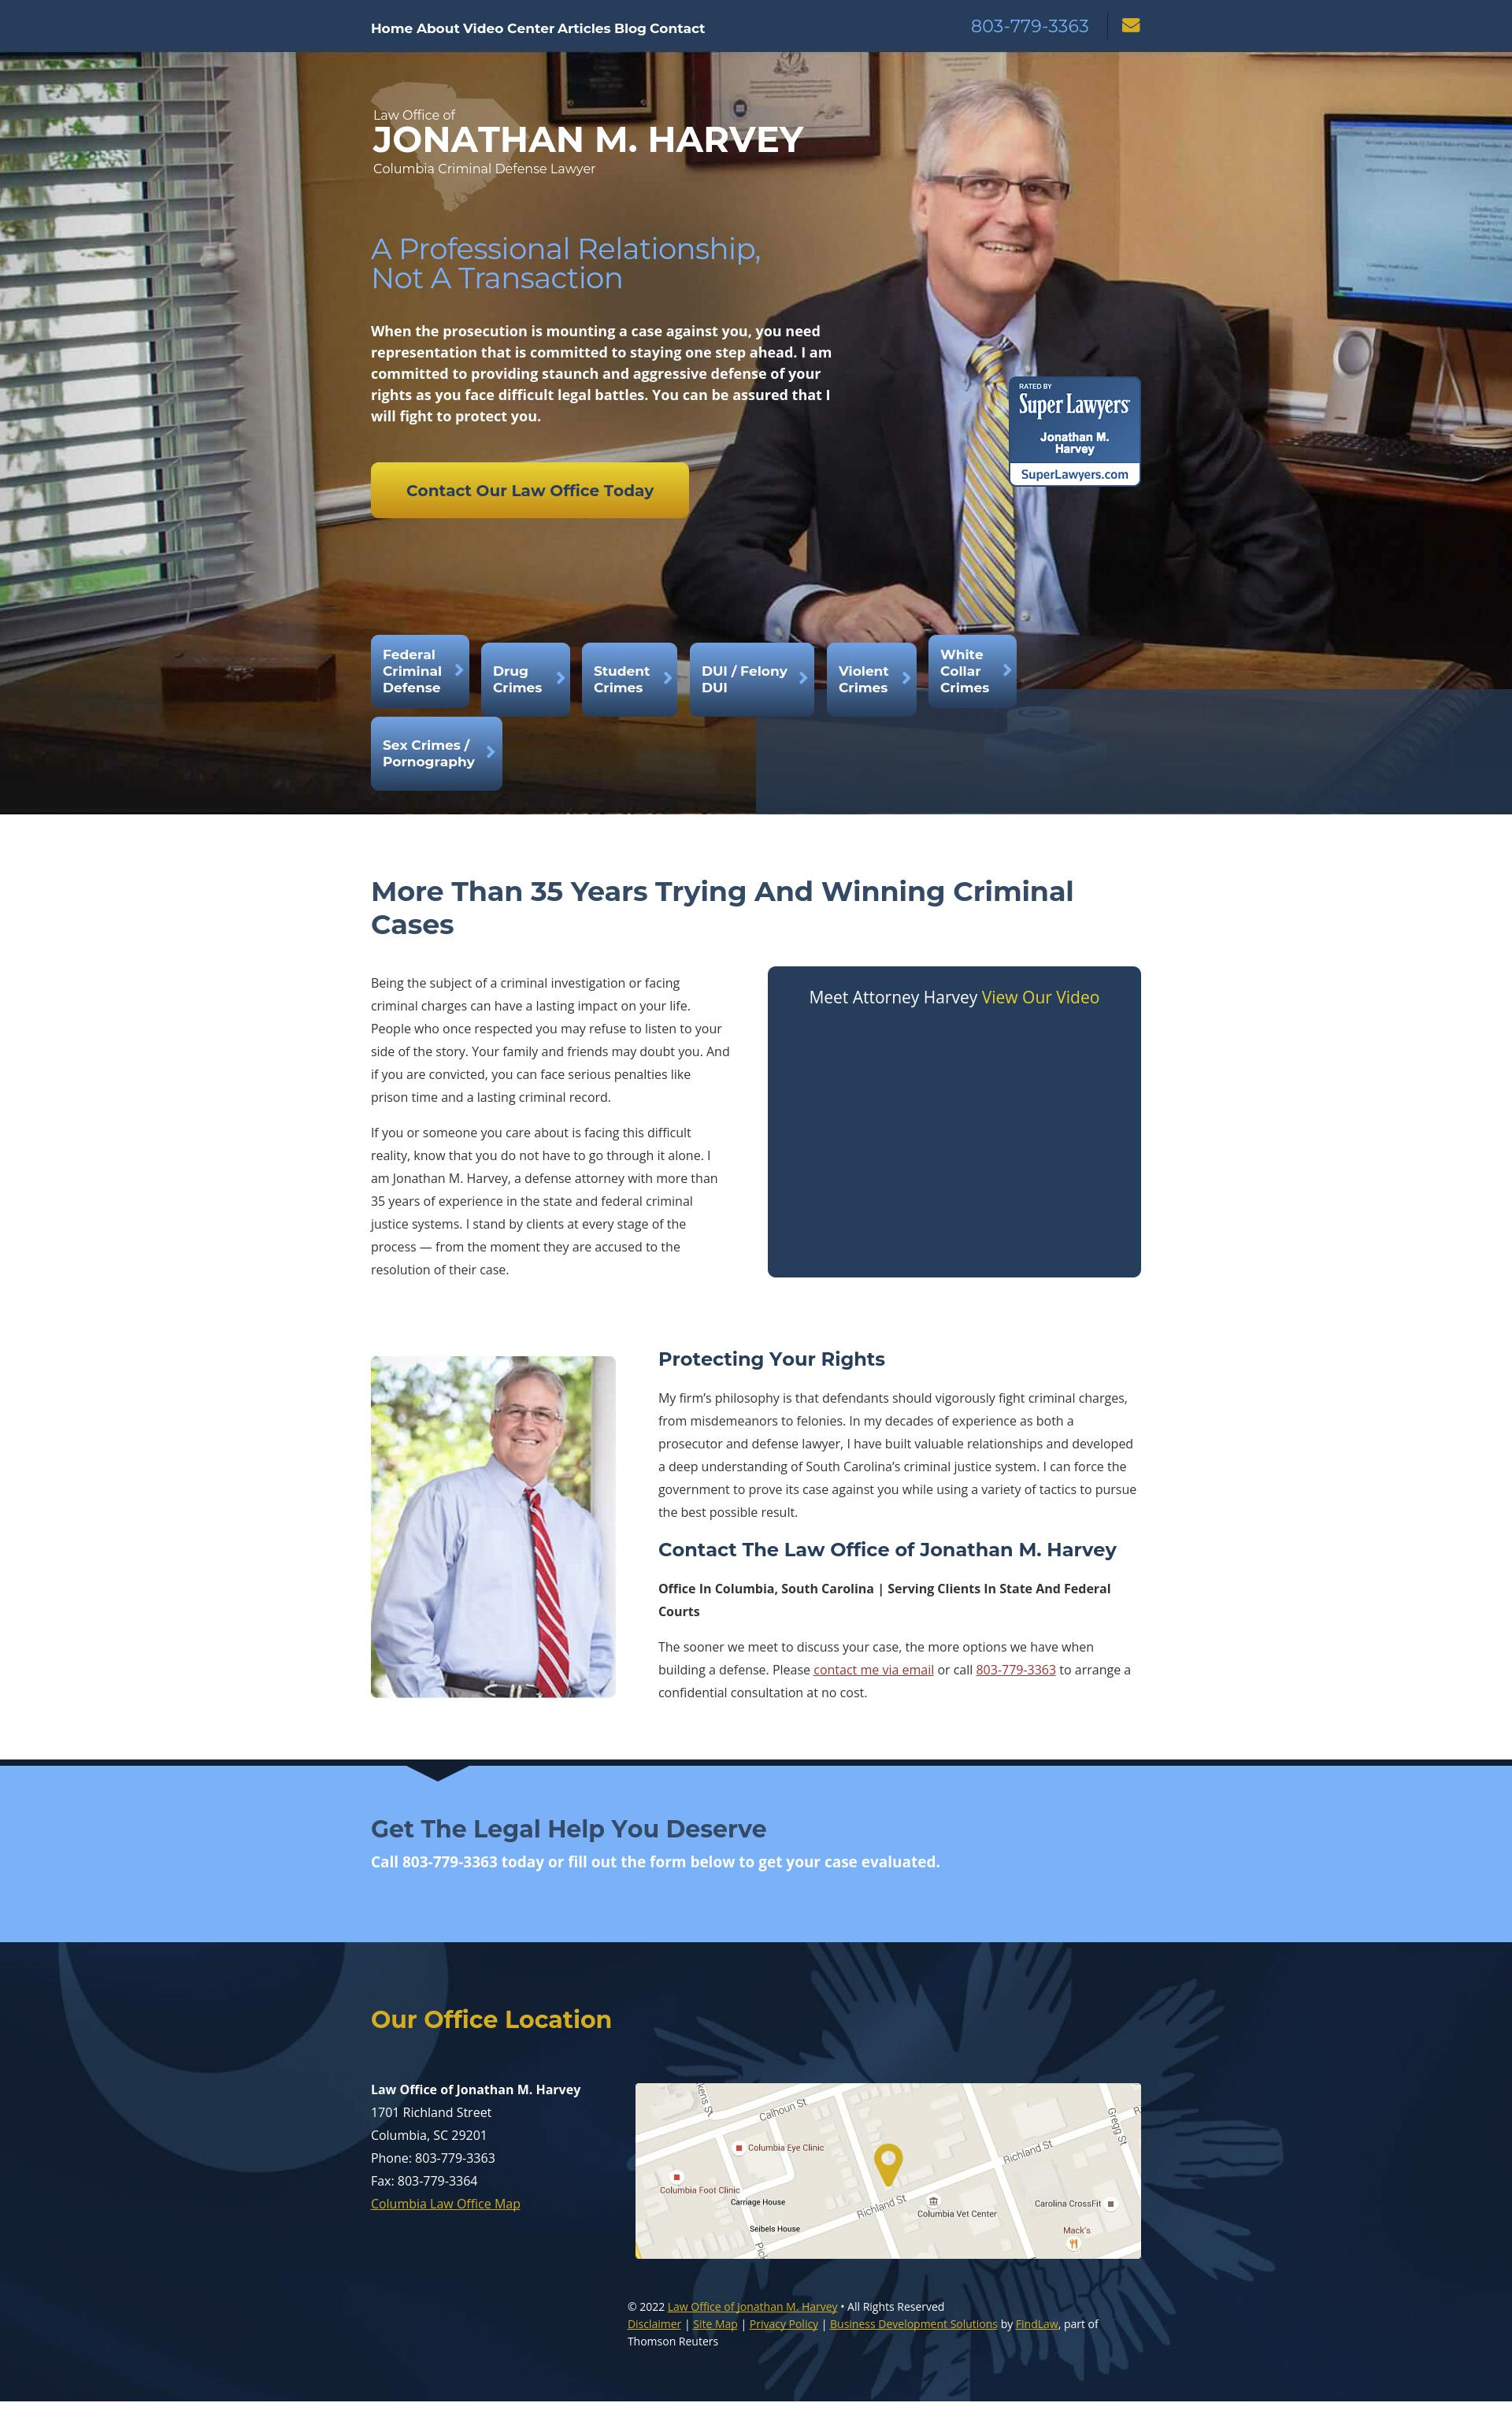 Law Offices of Jonathan M. Harvey - Columbia SC Lawyers